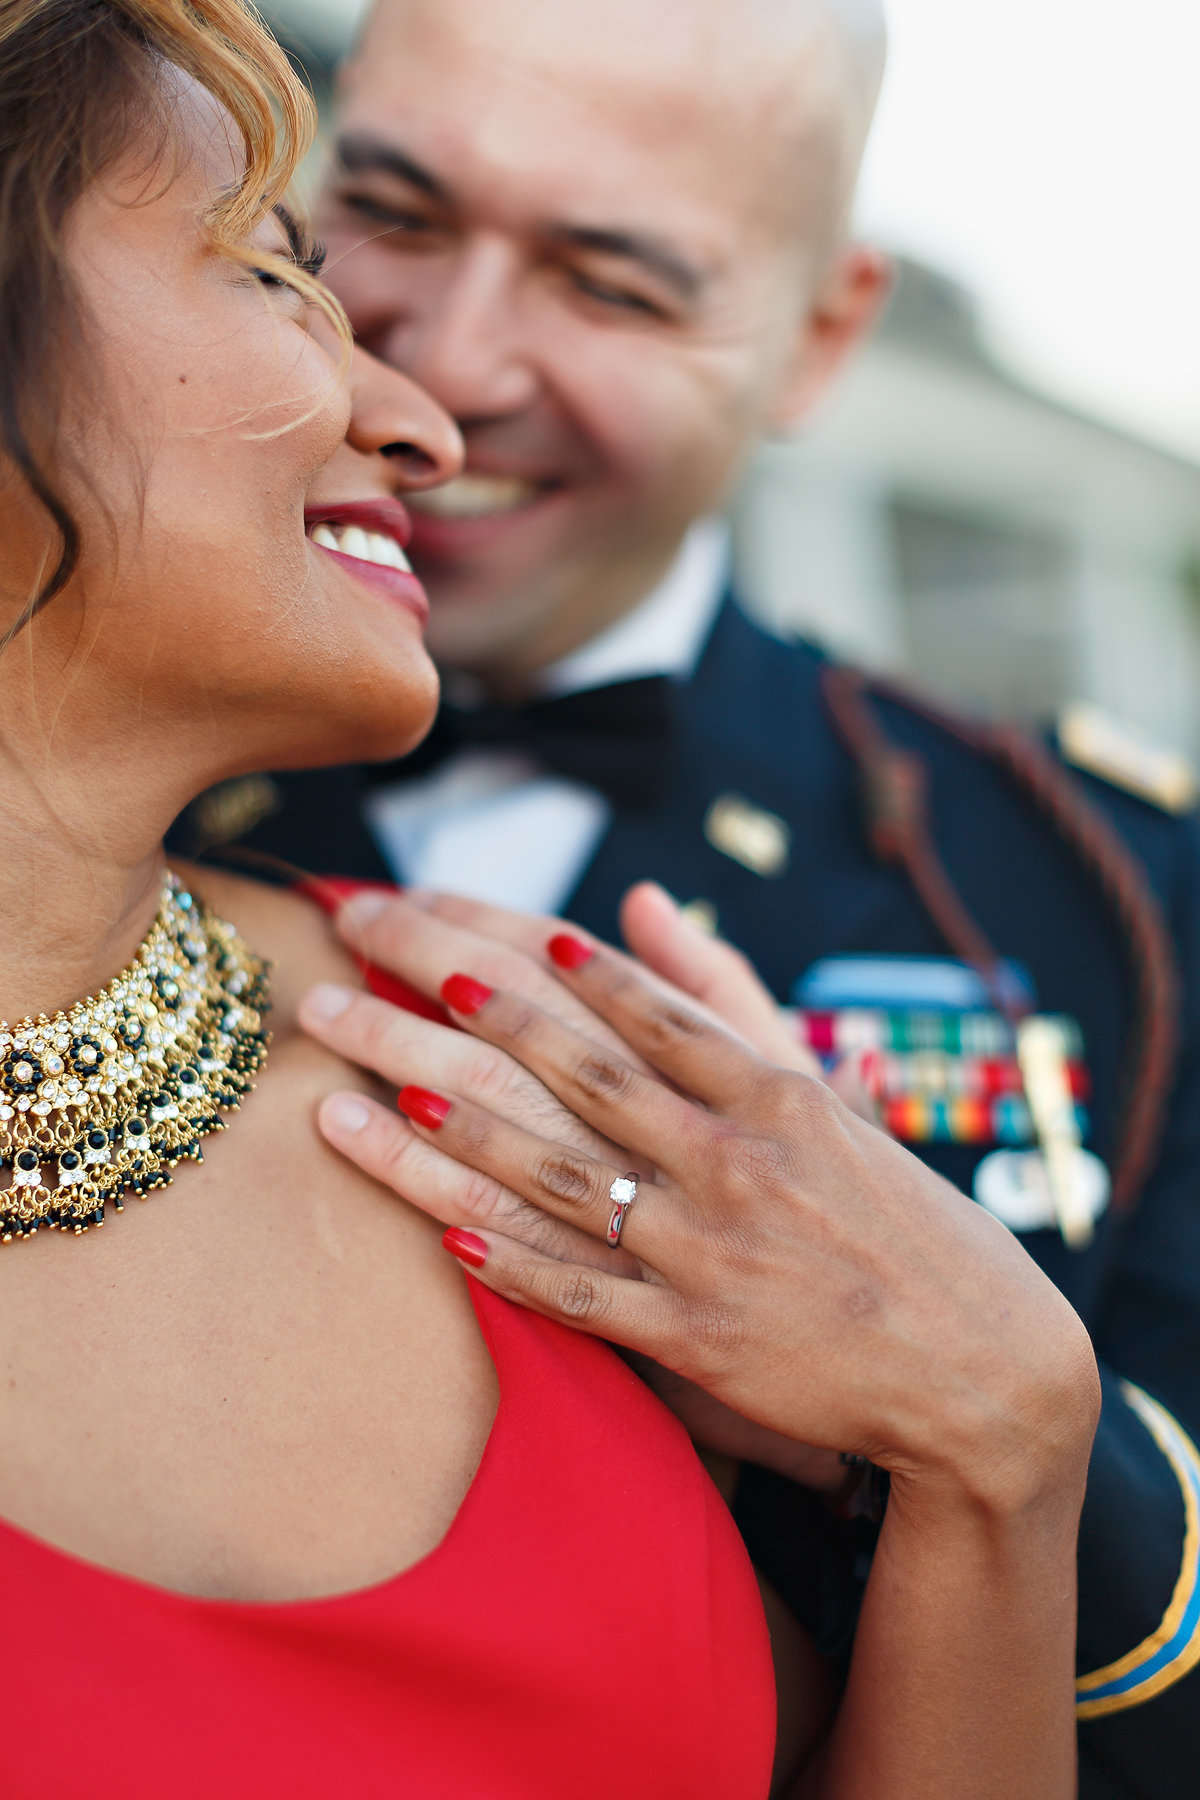 Jekyll-Island-Military-Ball-Surprise-Engagement-IMG-002